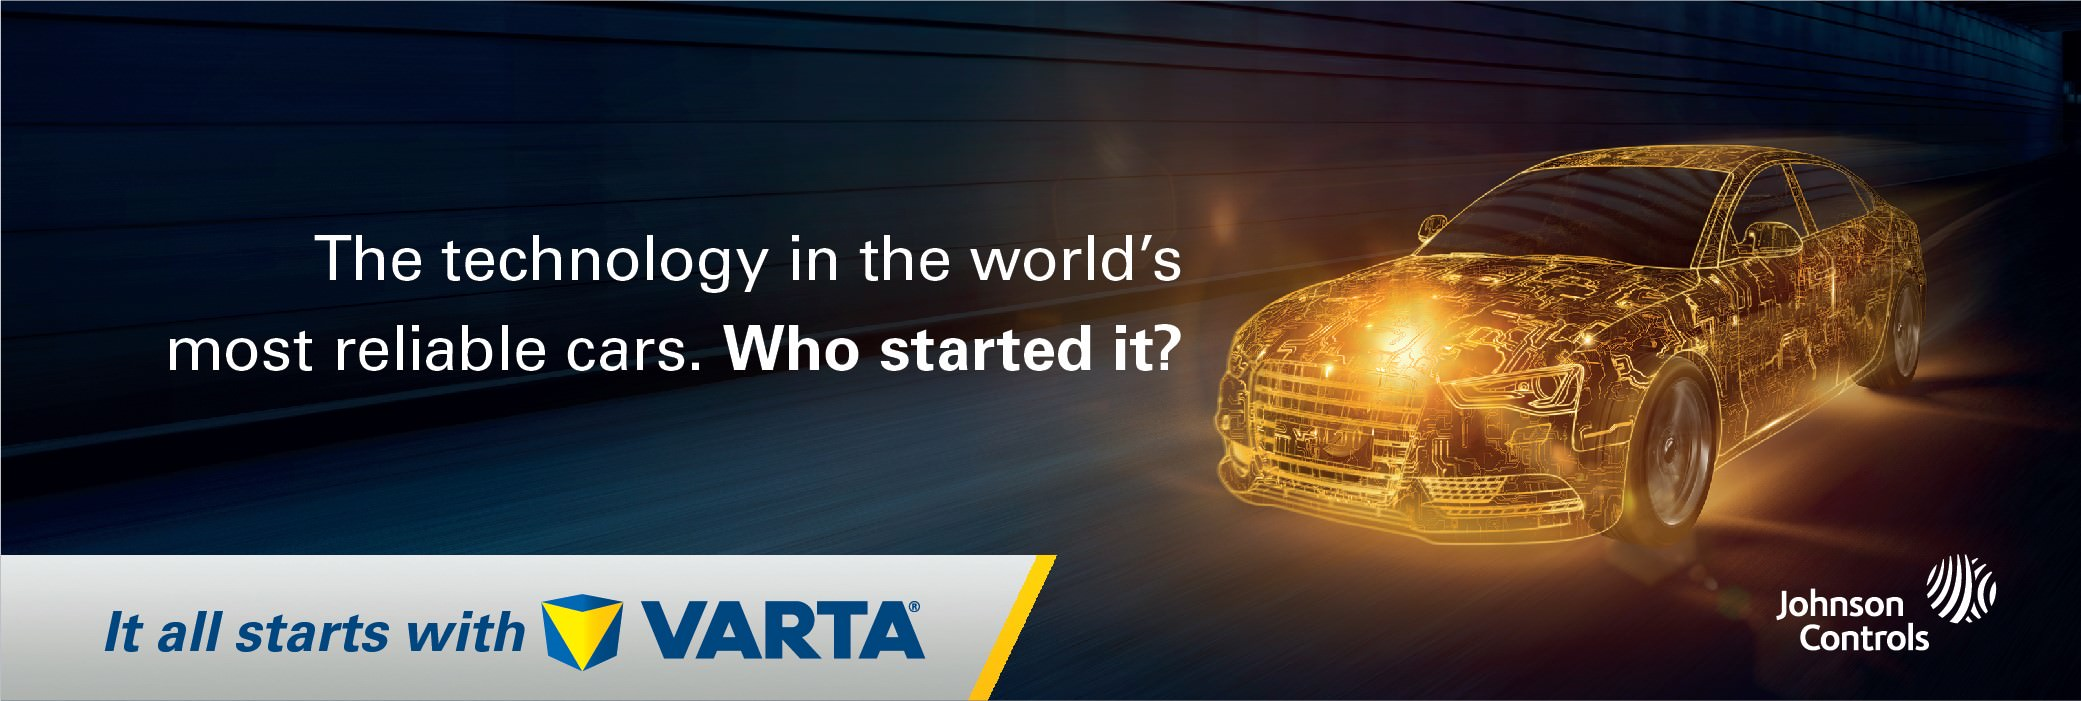 6222e0c70f7 The technology in the world's most reliable cars. Who started it?